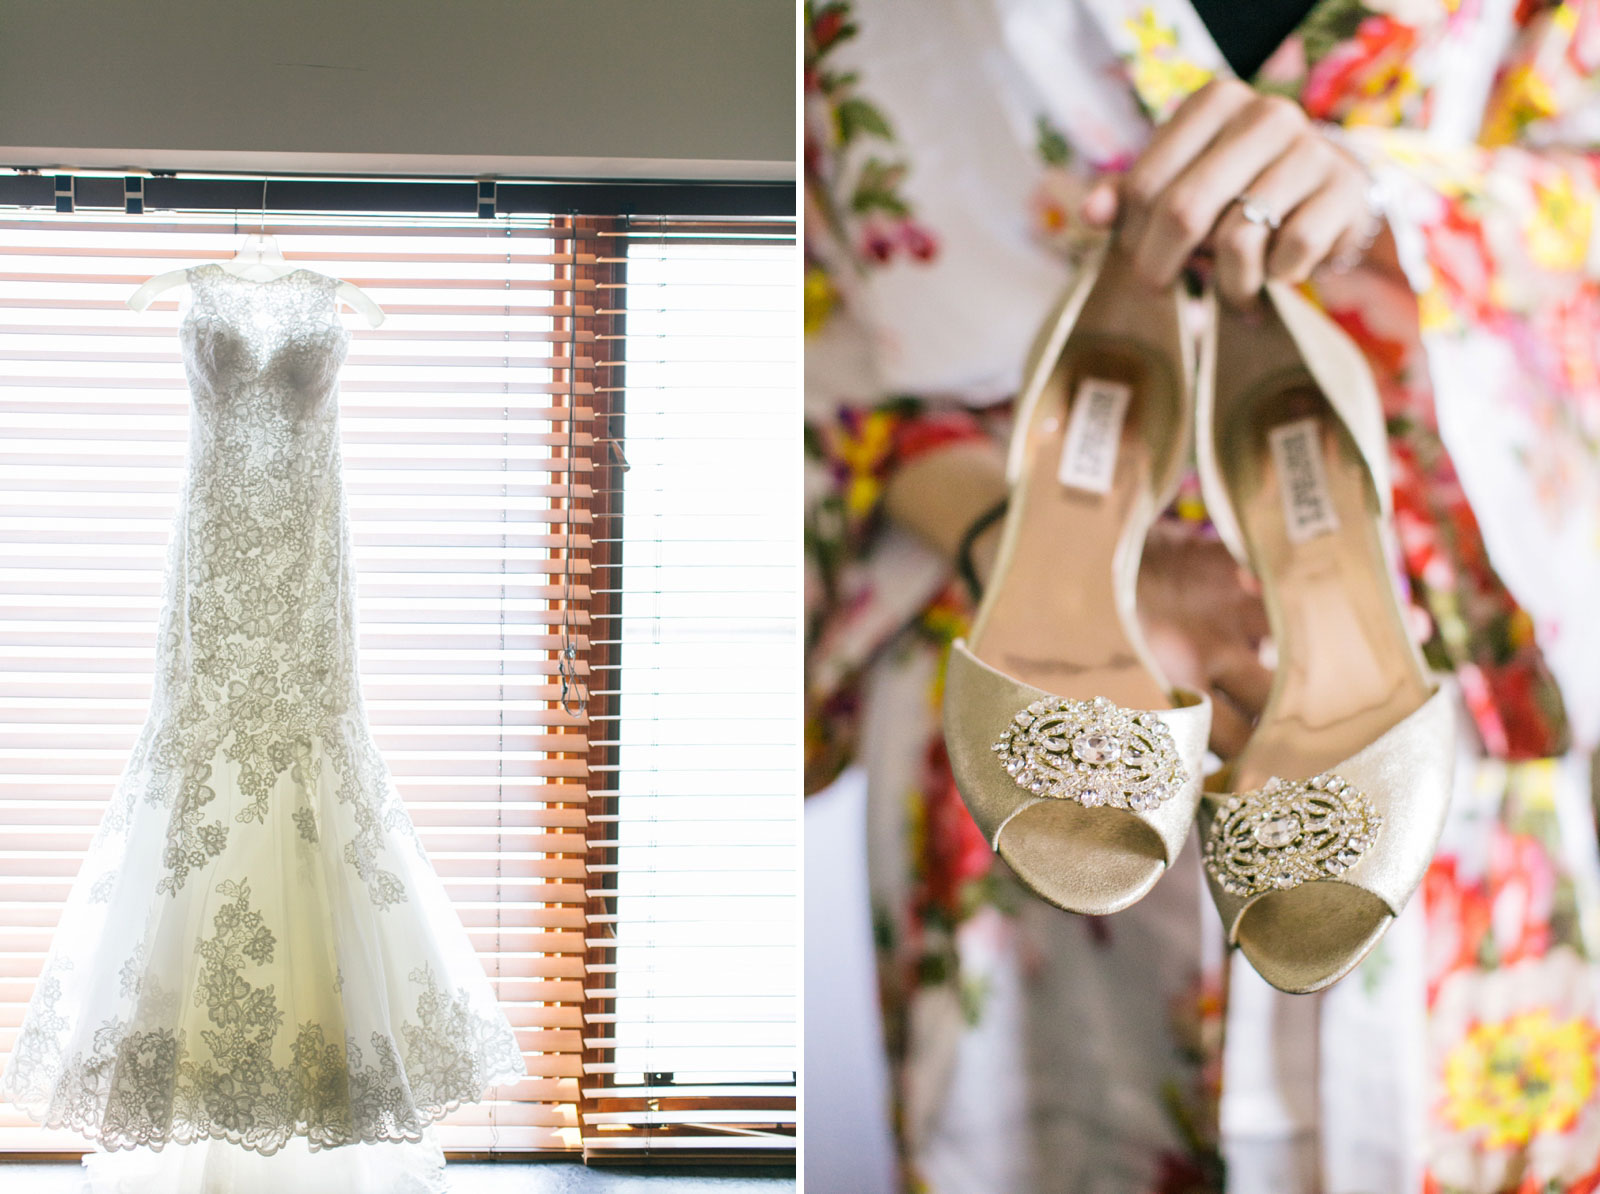 floral lace sweetheart wedding dress hanging in window, close up of bride holding gold shoes